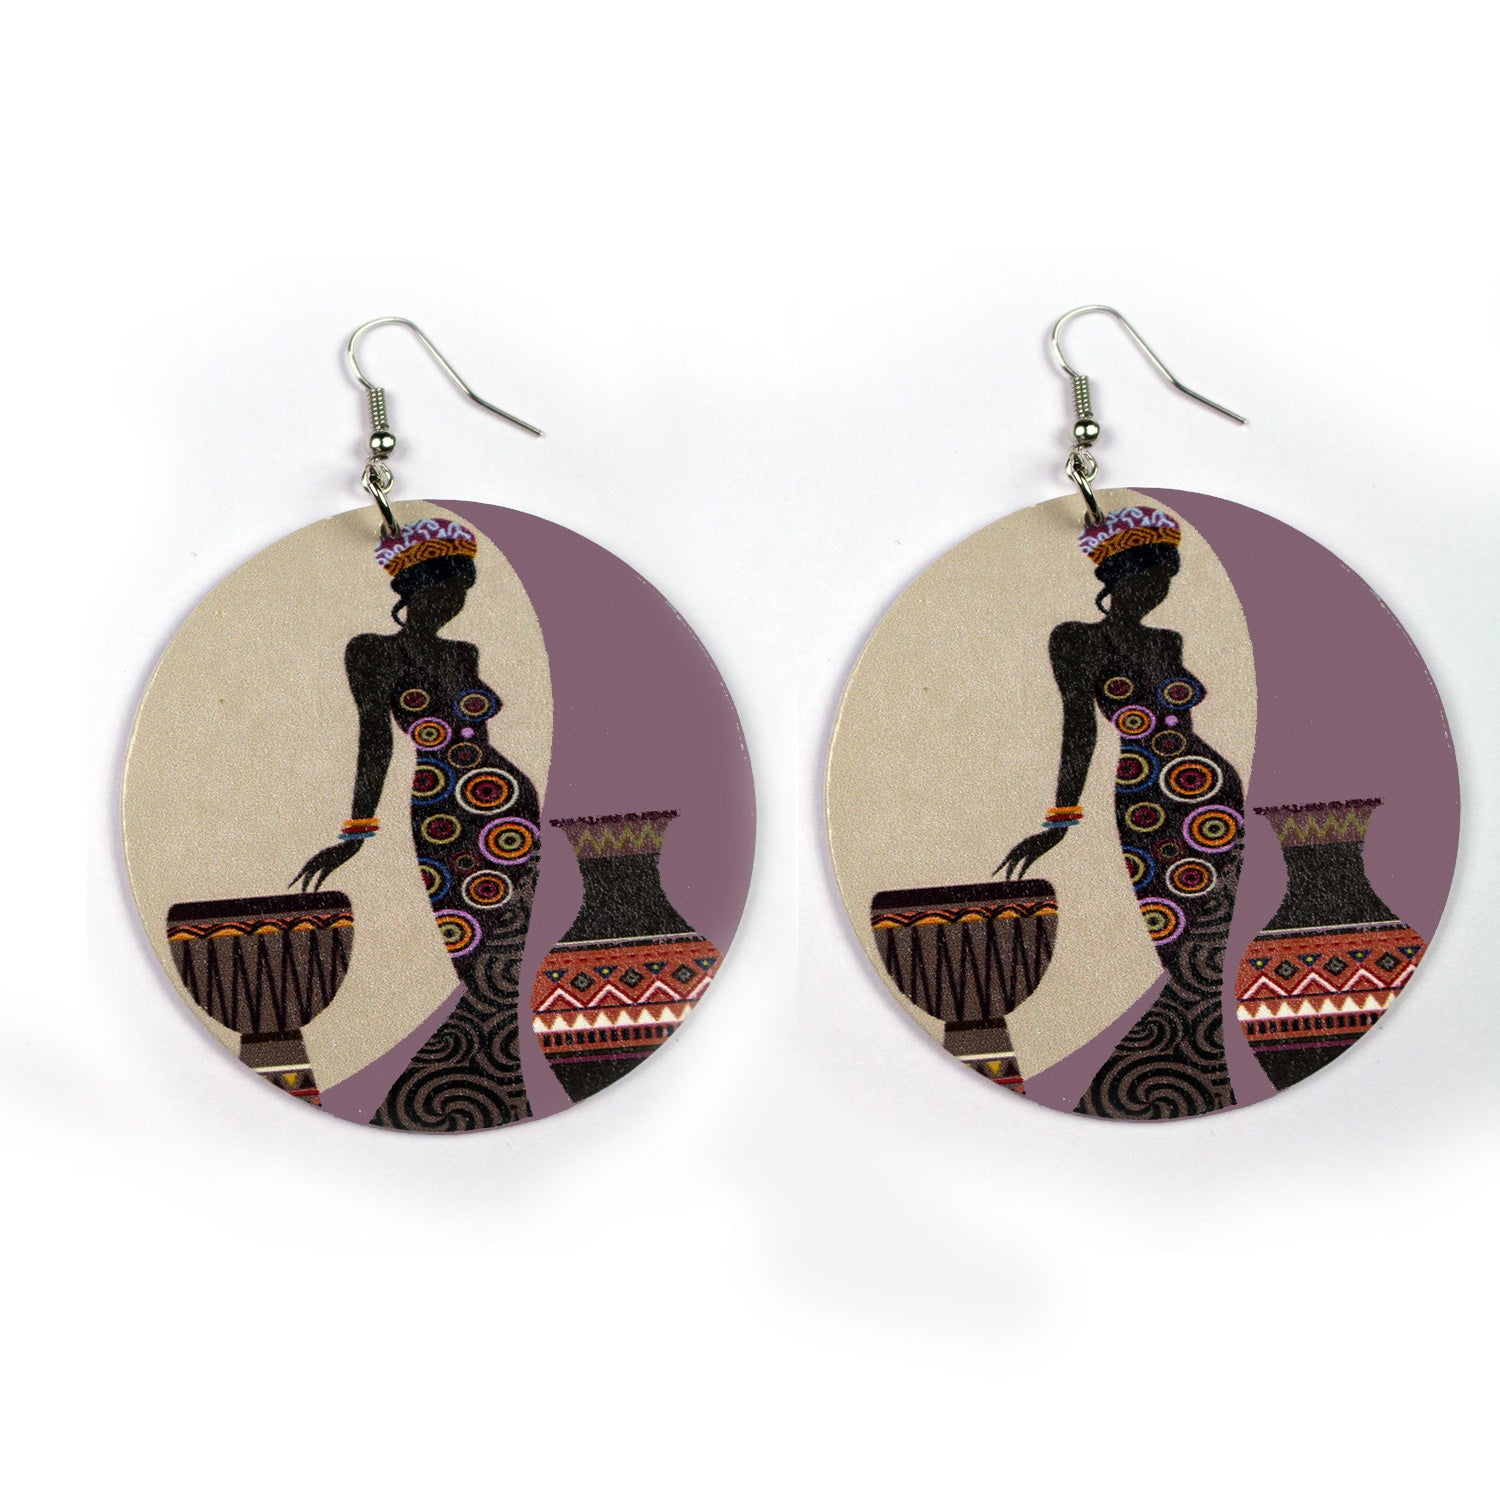 Large wooden Ethnic drop earrings | The woman and two pots